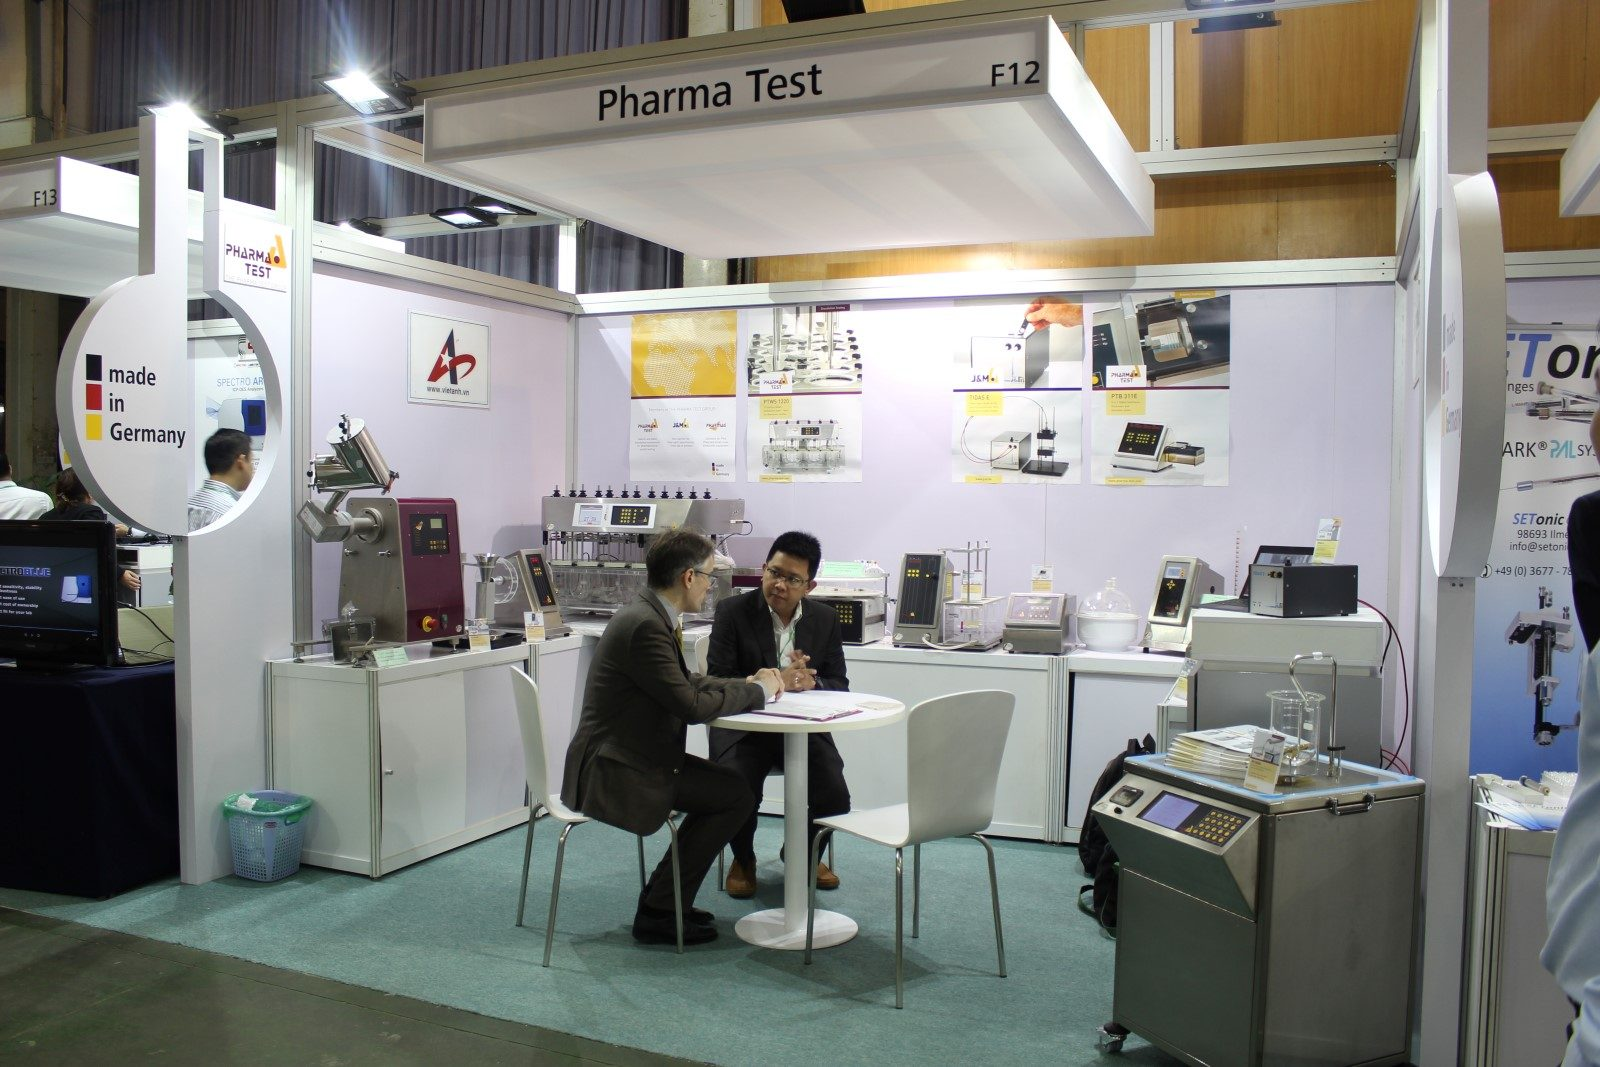 The Pharma Test booth at analytica Vietnam 2017 in Hanoi – here with a visit from Hans Anthony from PT Pharma Test Indonesia